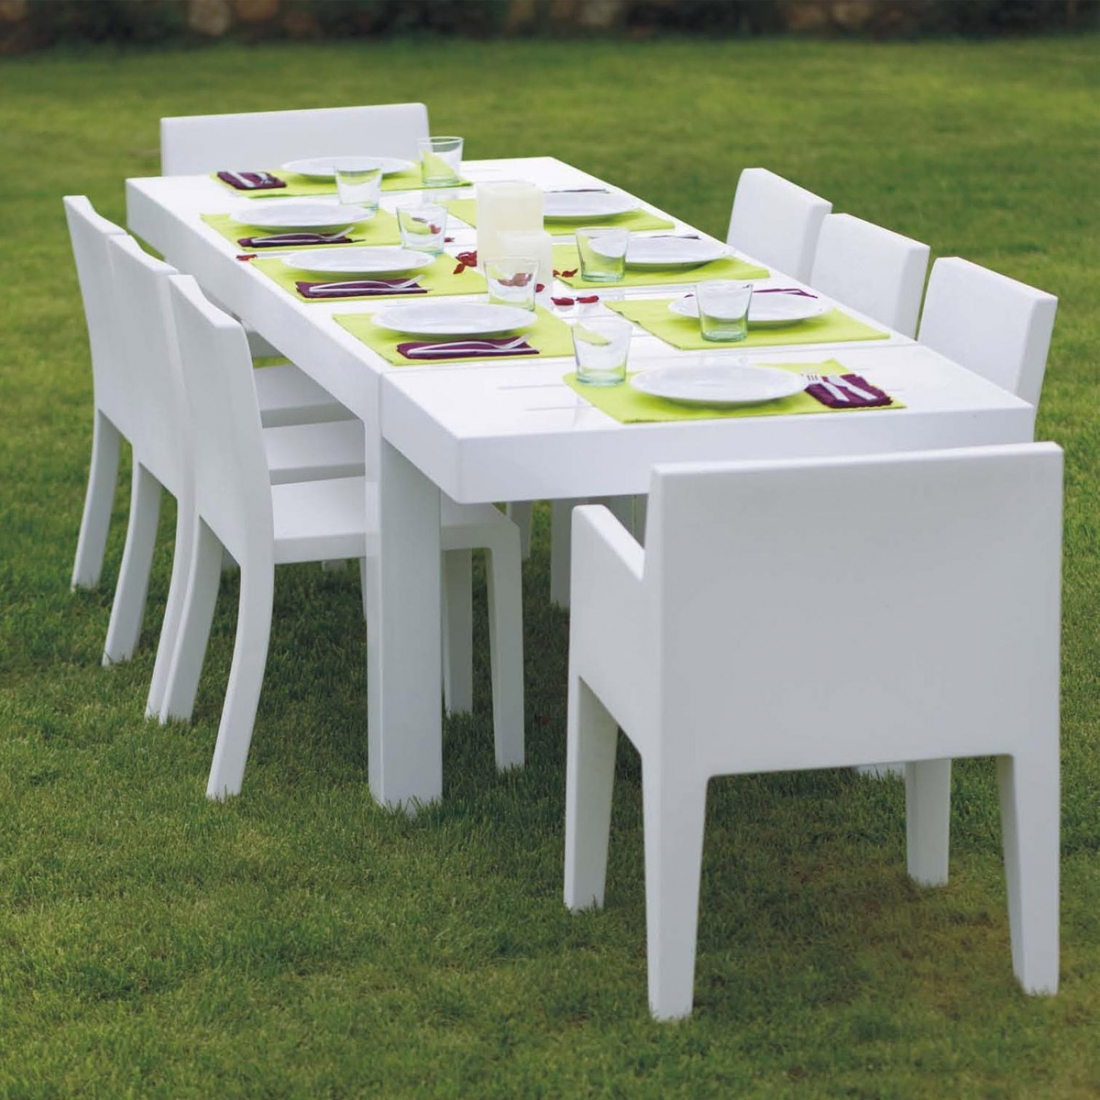 Table de jardin design 12 personnes jut par vondom - Table de jardin design ...